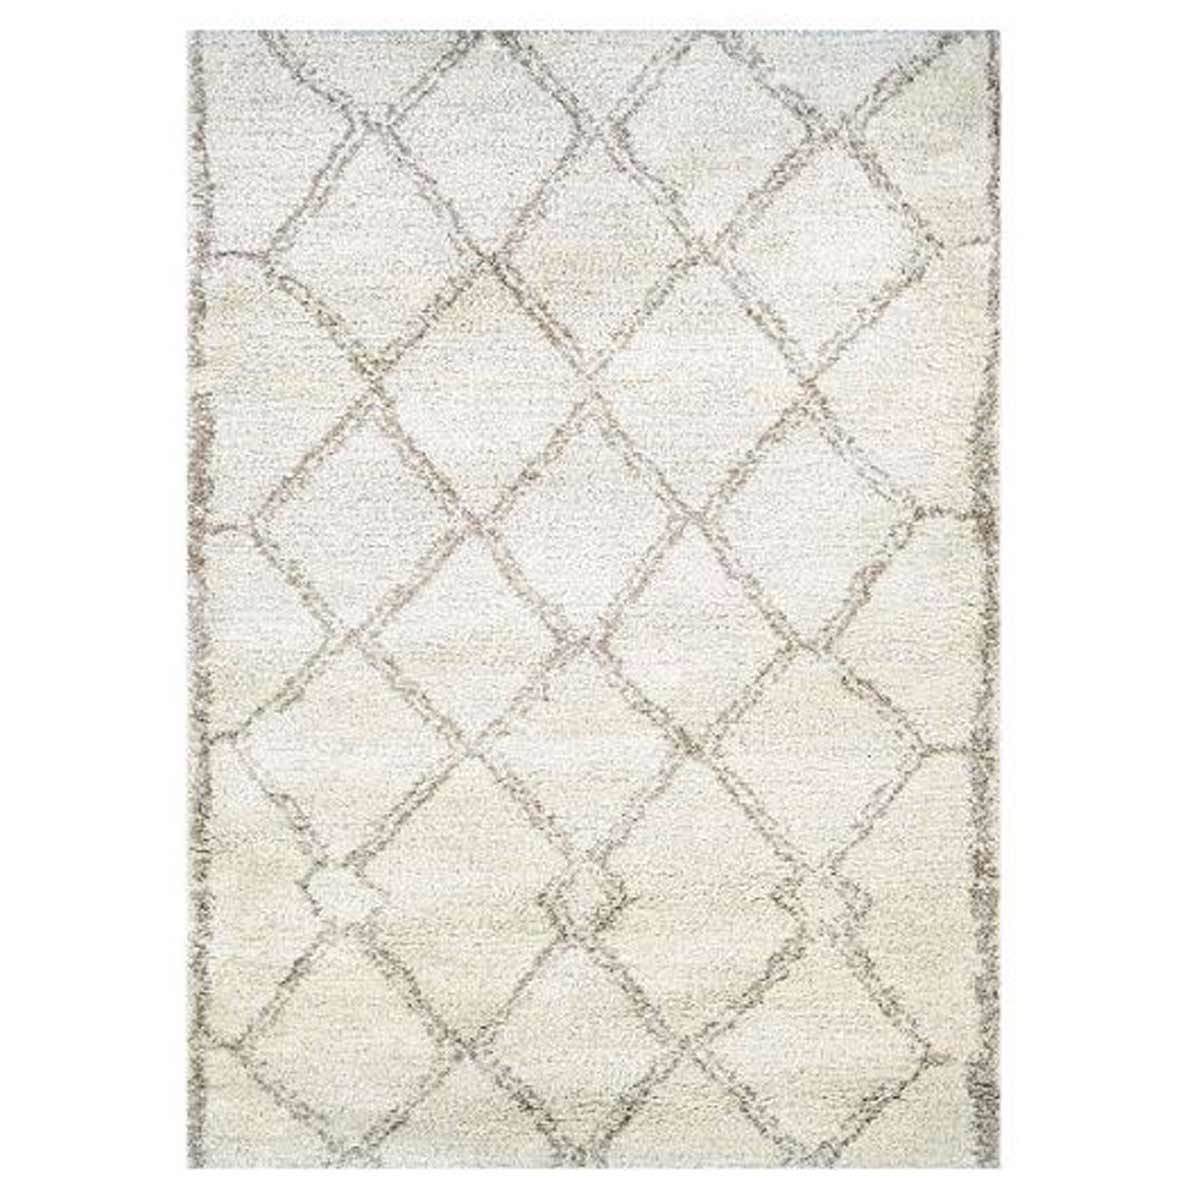 white and bronze patterned rug from Macy's photo